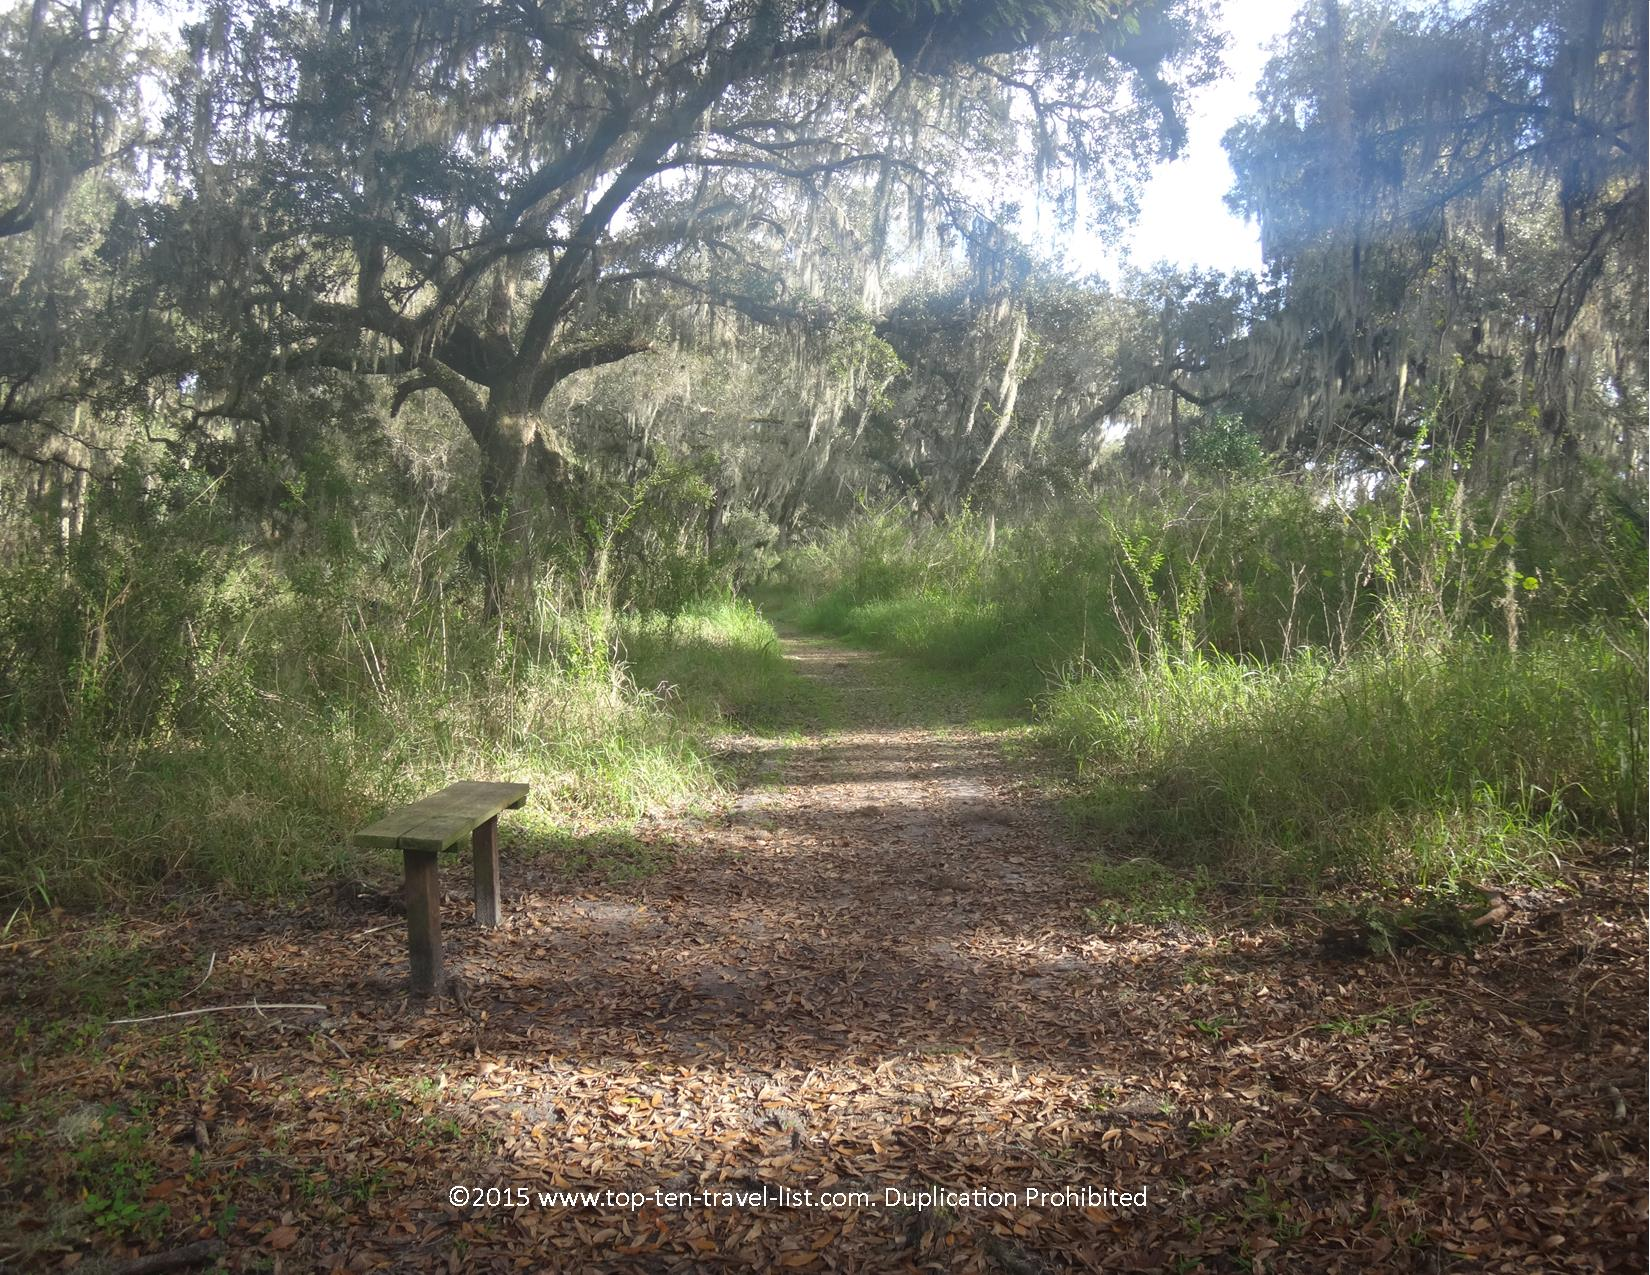 A view of the Tree Hopper Trail at Circle B bar Reserve in Lakeland, florida